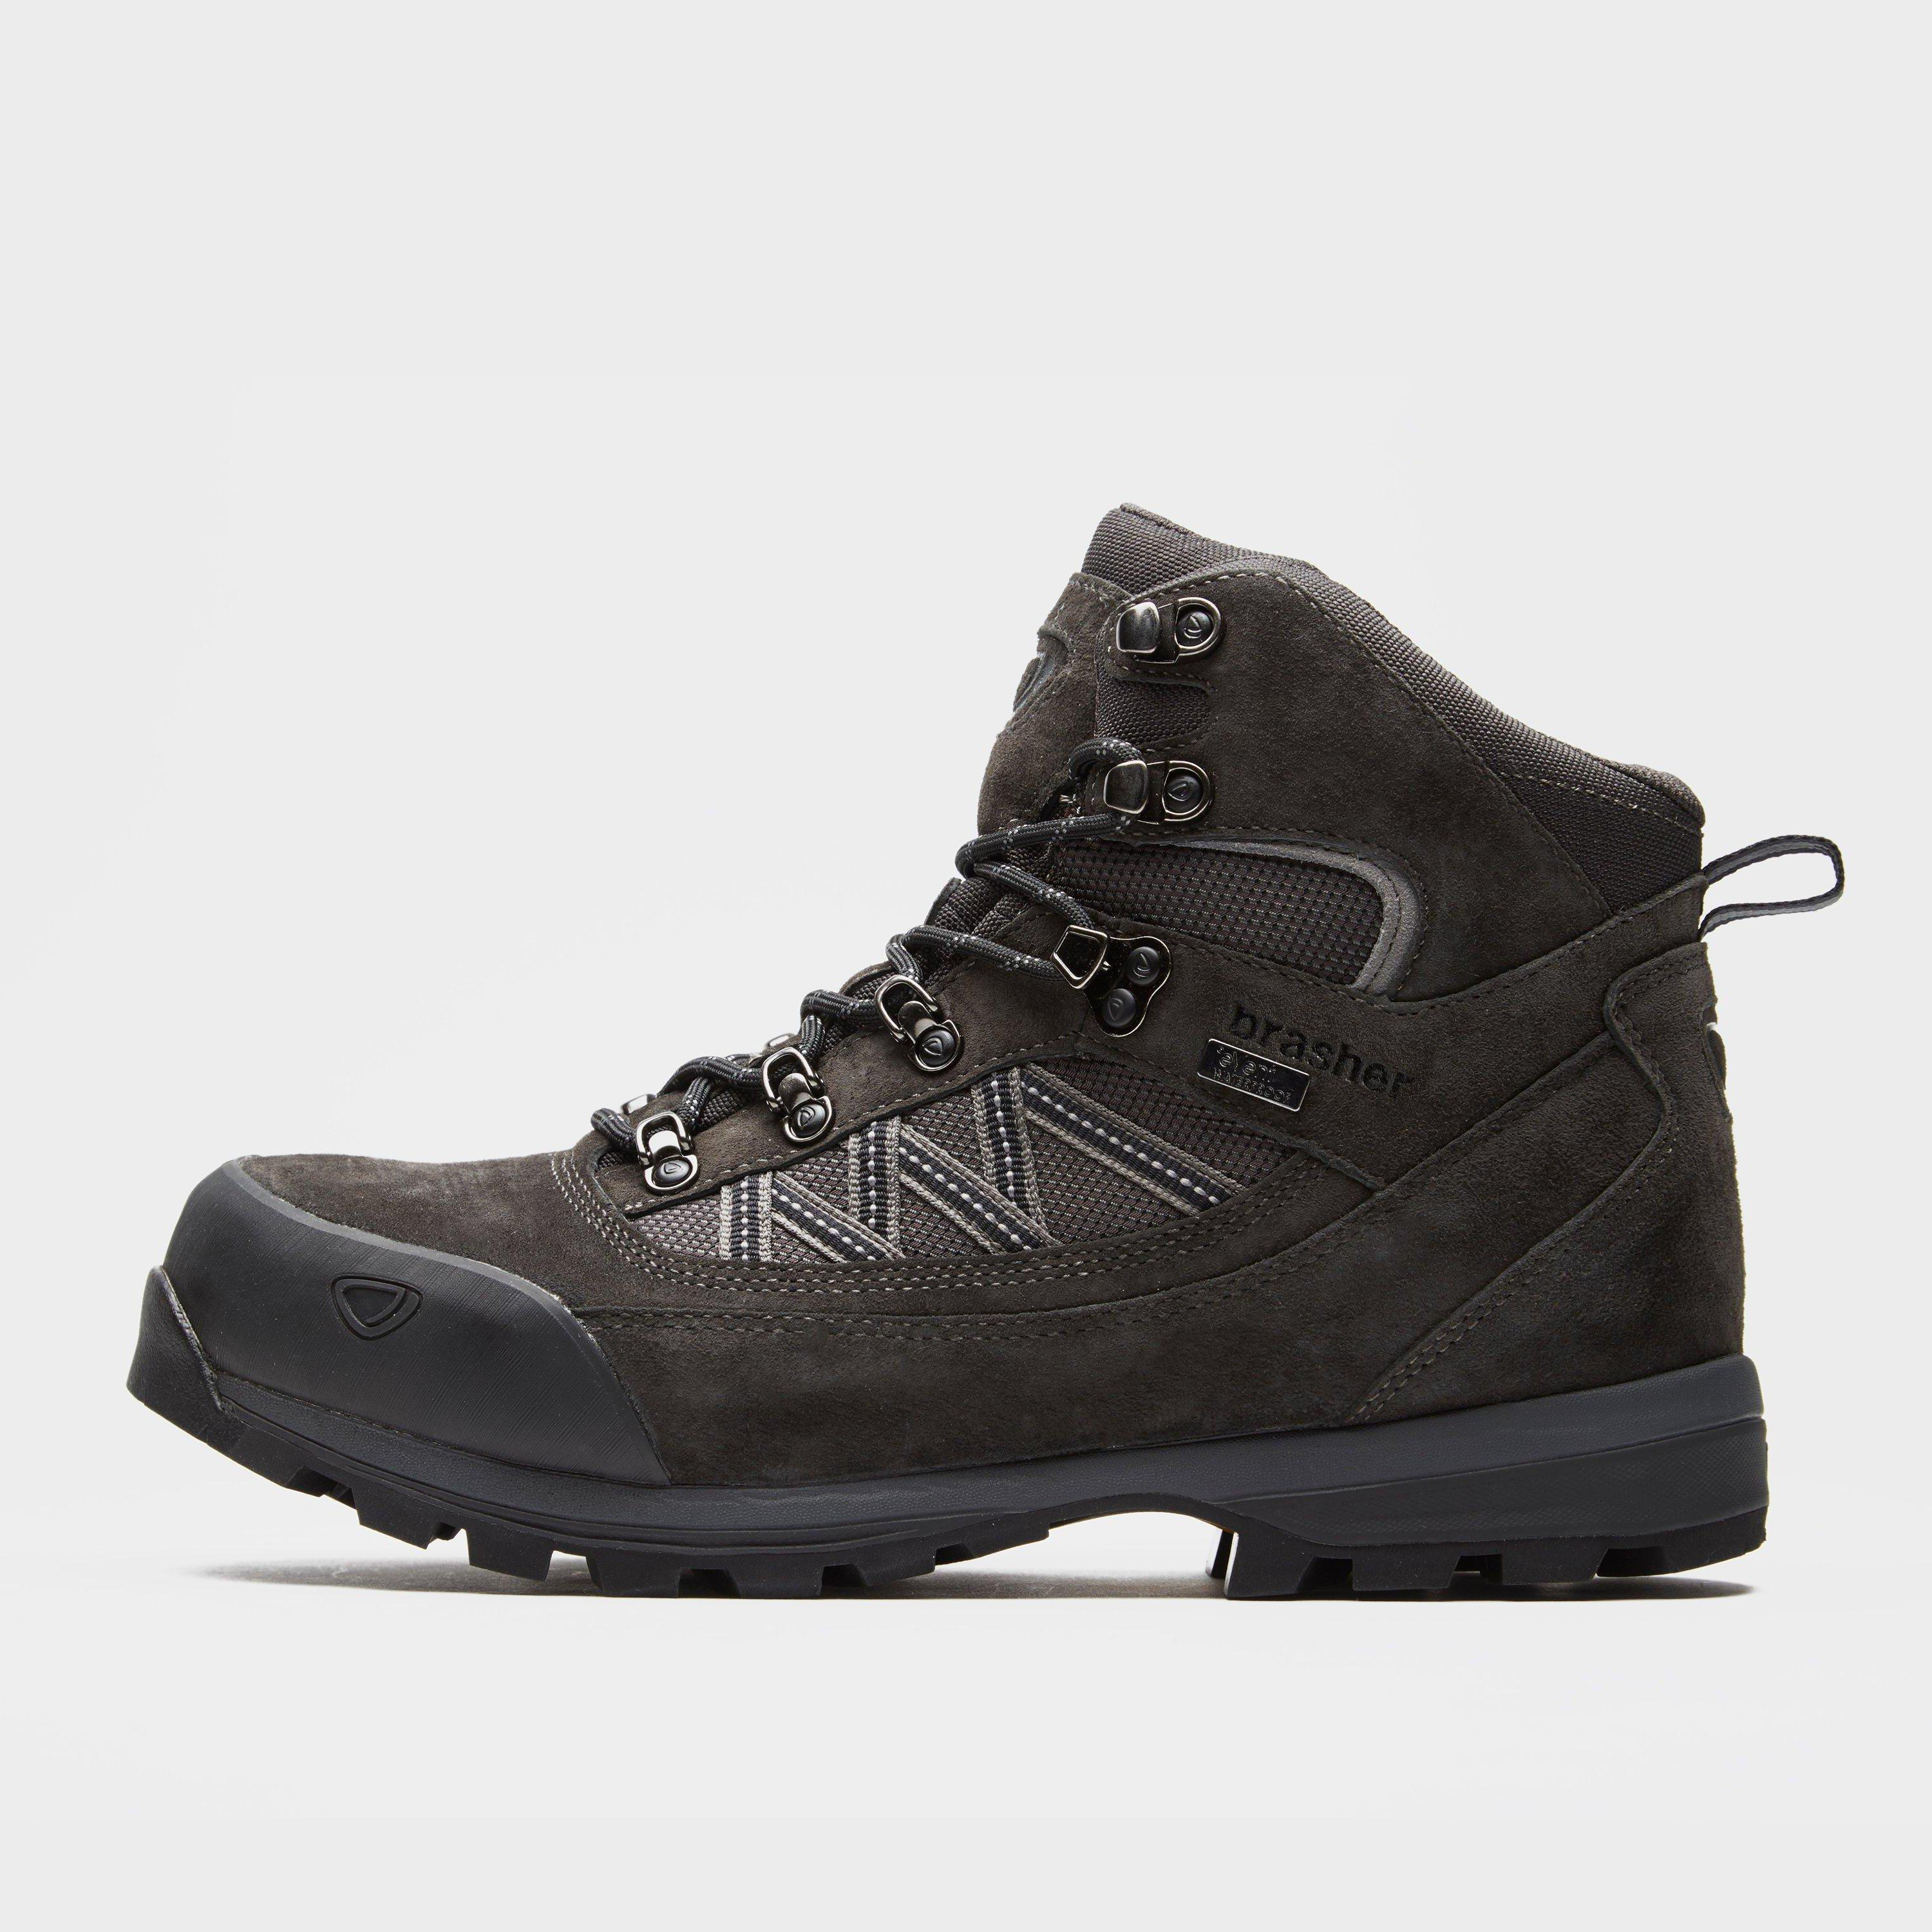 Clearance Manchester Great Sale Pictures Sale Online BRASKER MID - Walking boots - black How Much Buy Online Authentic cN6vEu7Lz